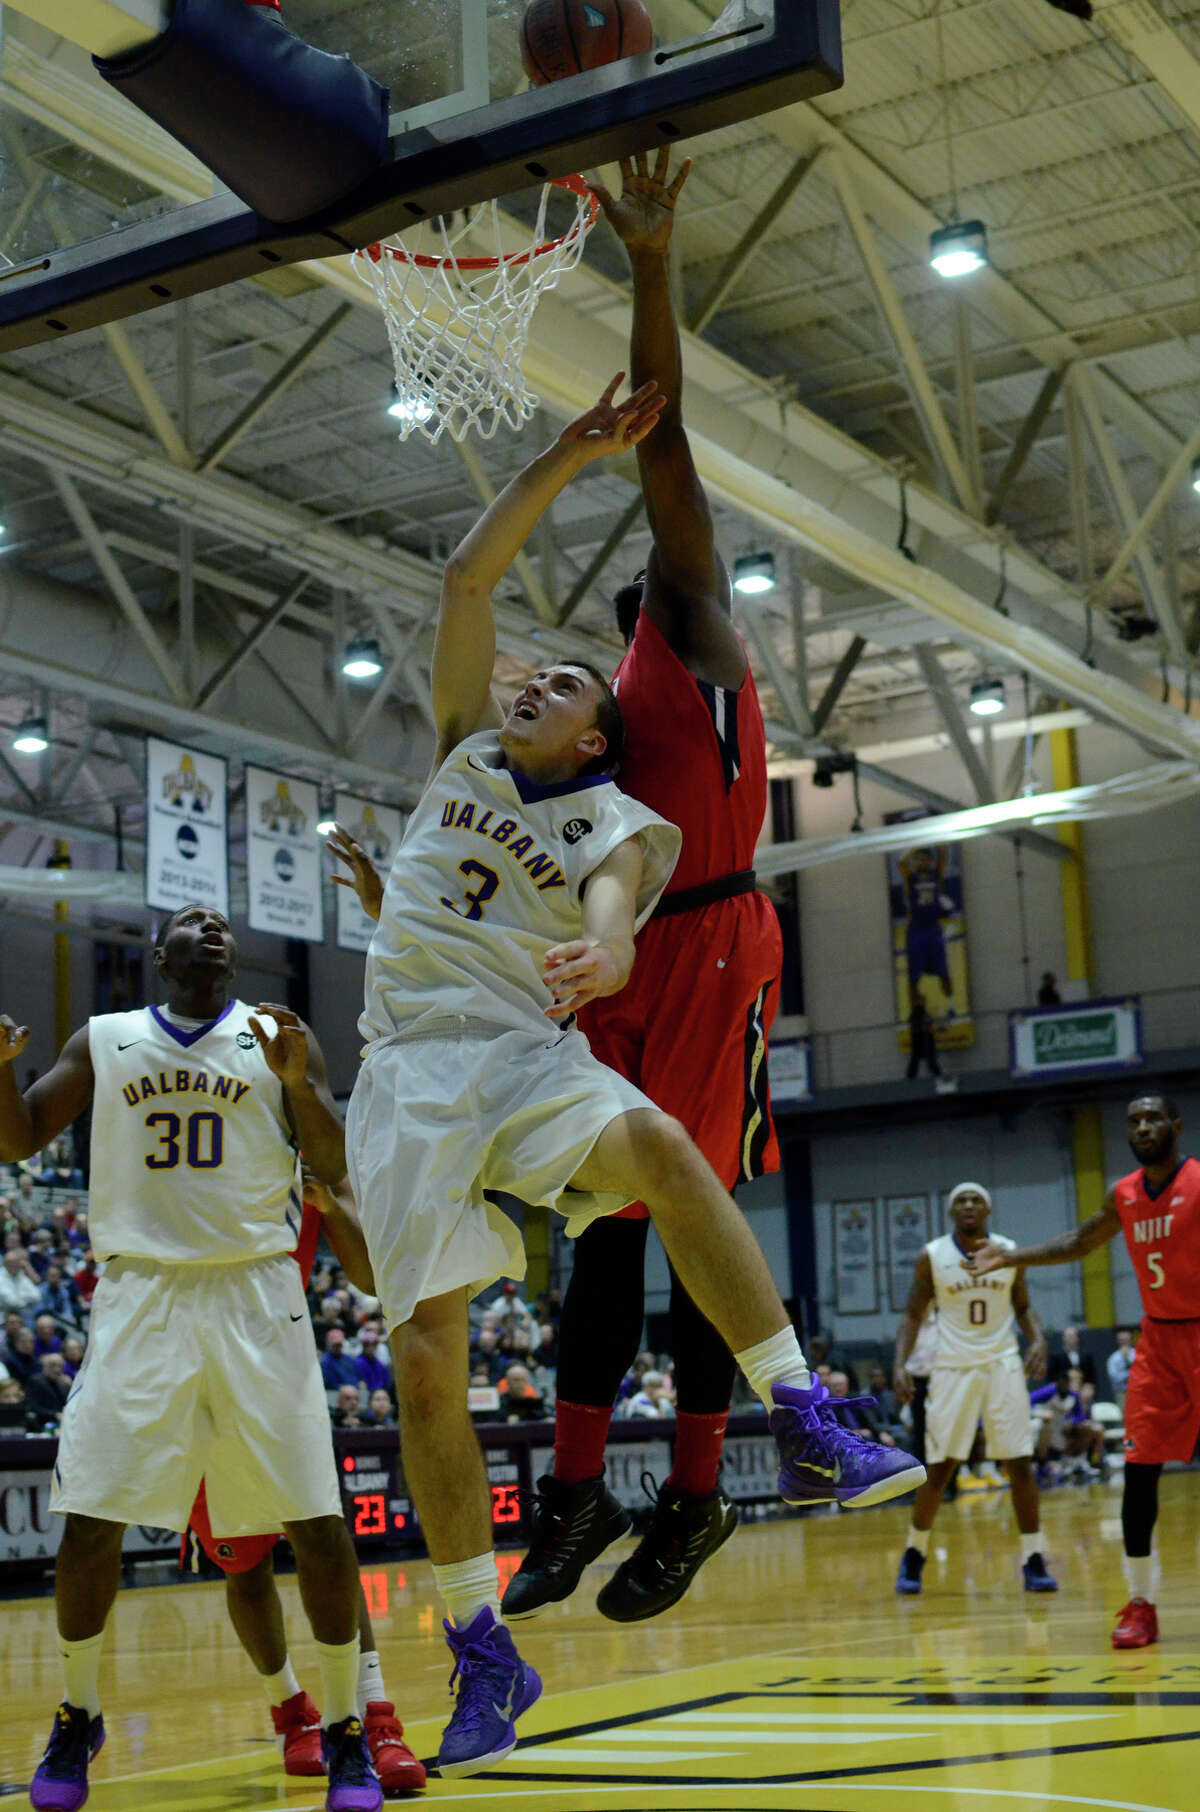 UAlbany guard Joe Cremo's shot is blocked by New Jersey Institute of Technology forward Tim Coleman during the Naismith Basketball Hall of Fame Classic, Friday, Nov. 27, 2015, at University at Albany in Albany, N.Y. (Jenn March/Special to the Times Union)